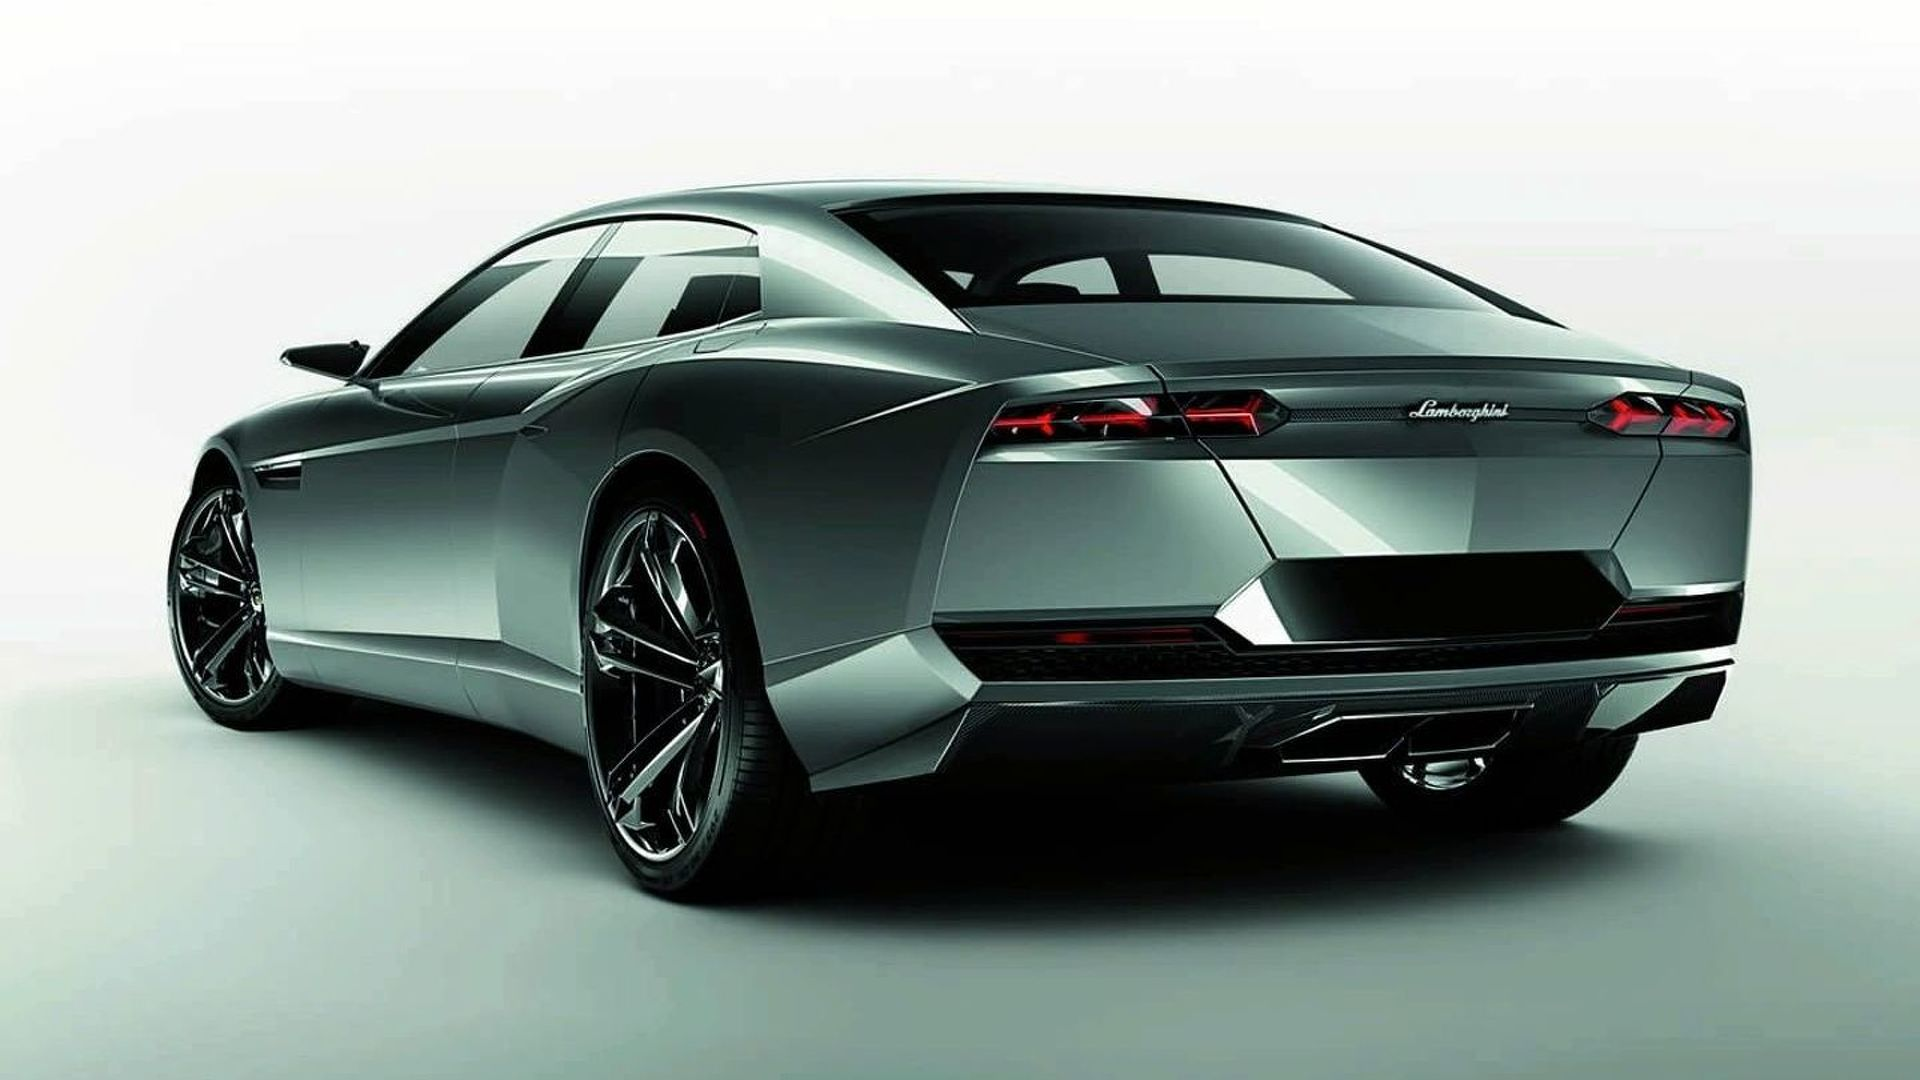 Lamborghini favoring SUV over sedan - report